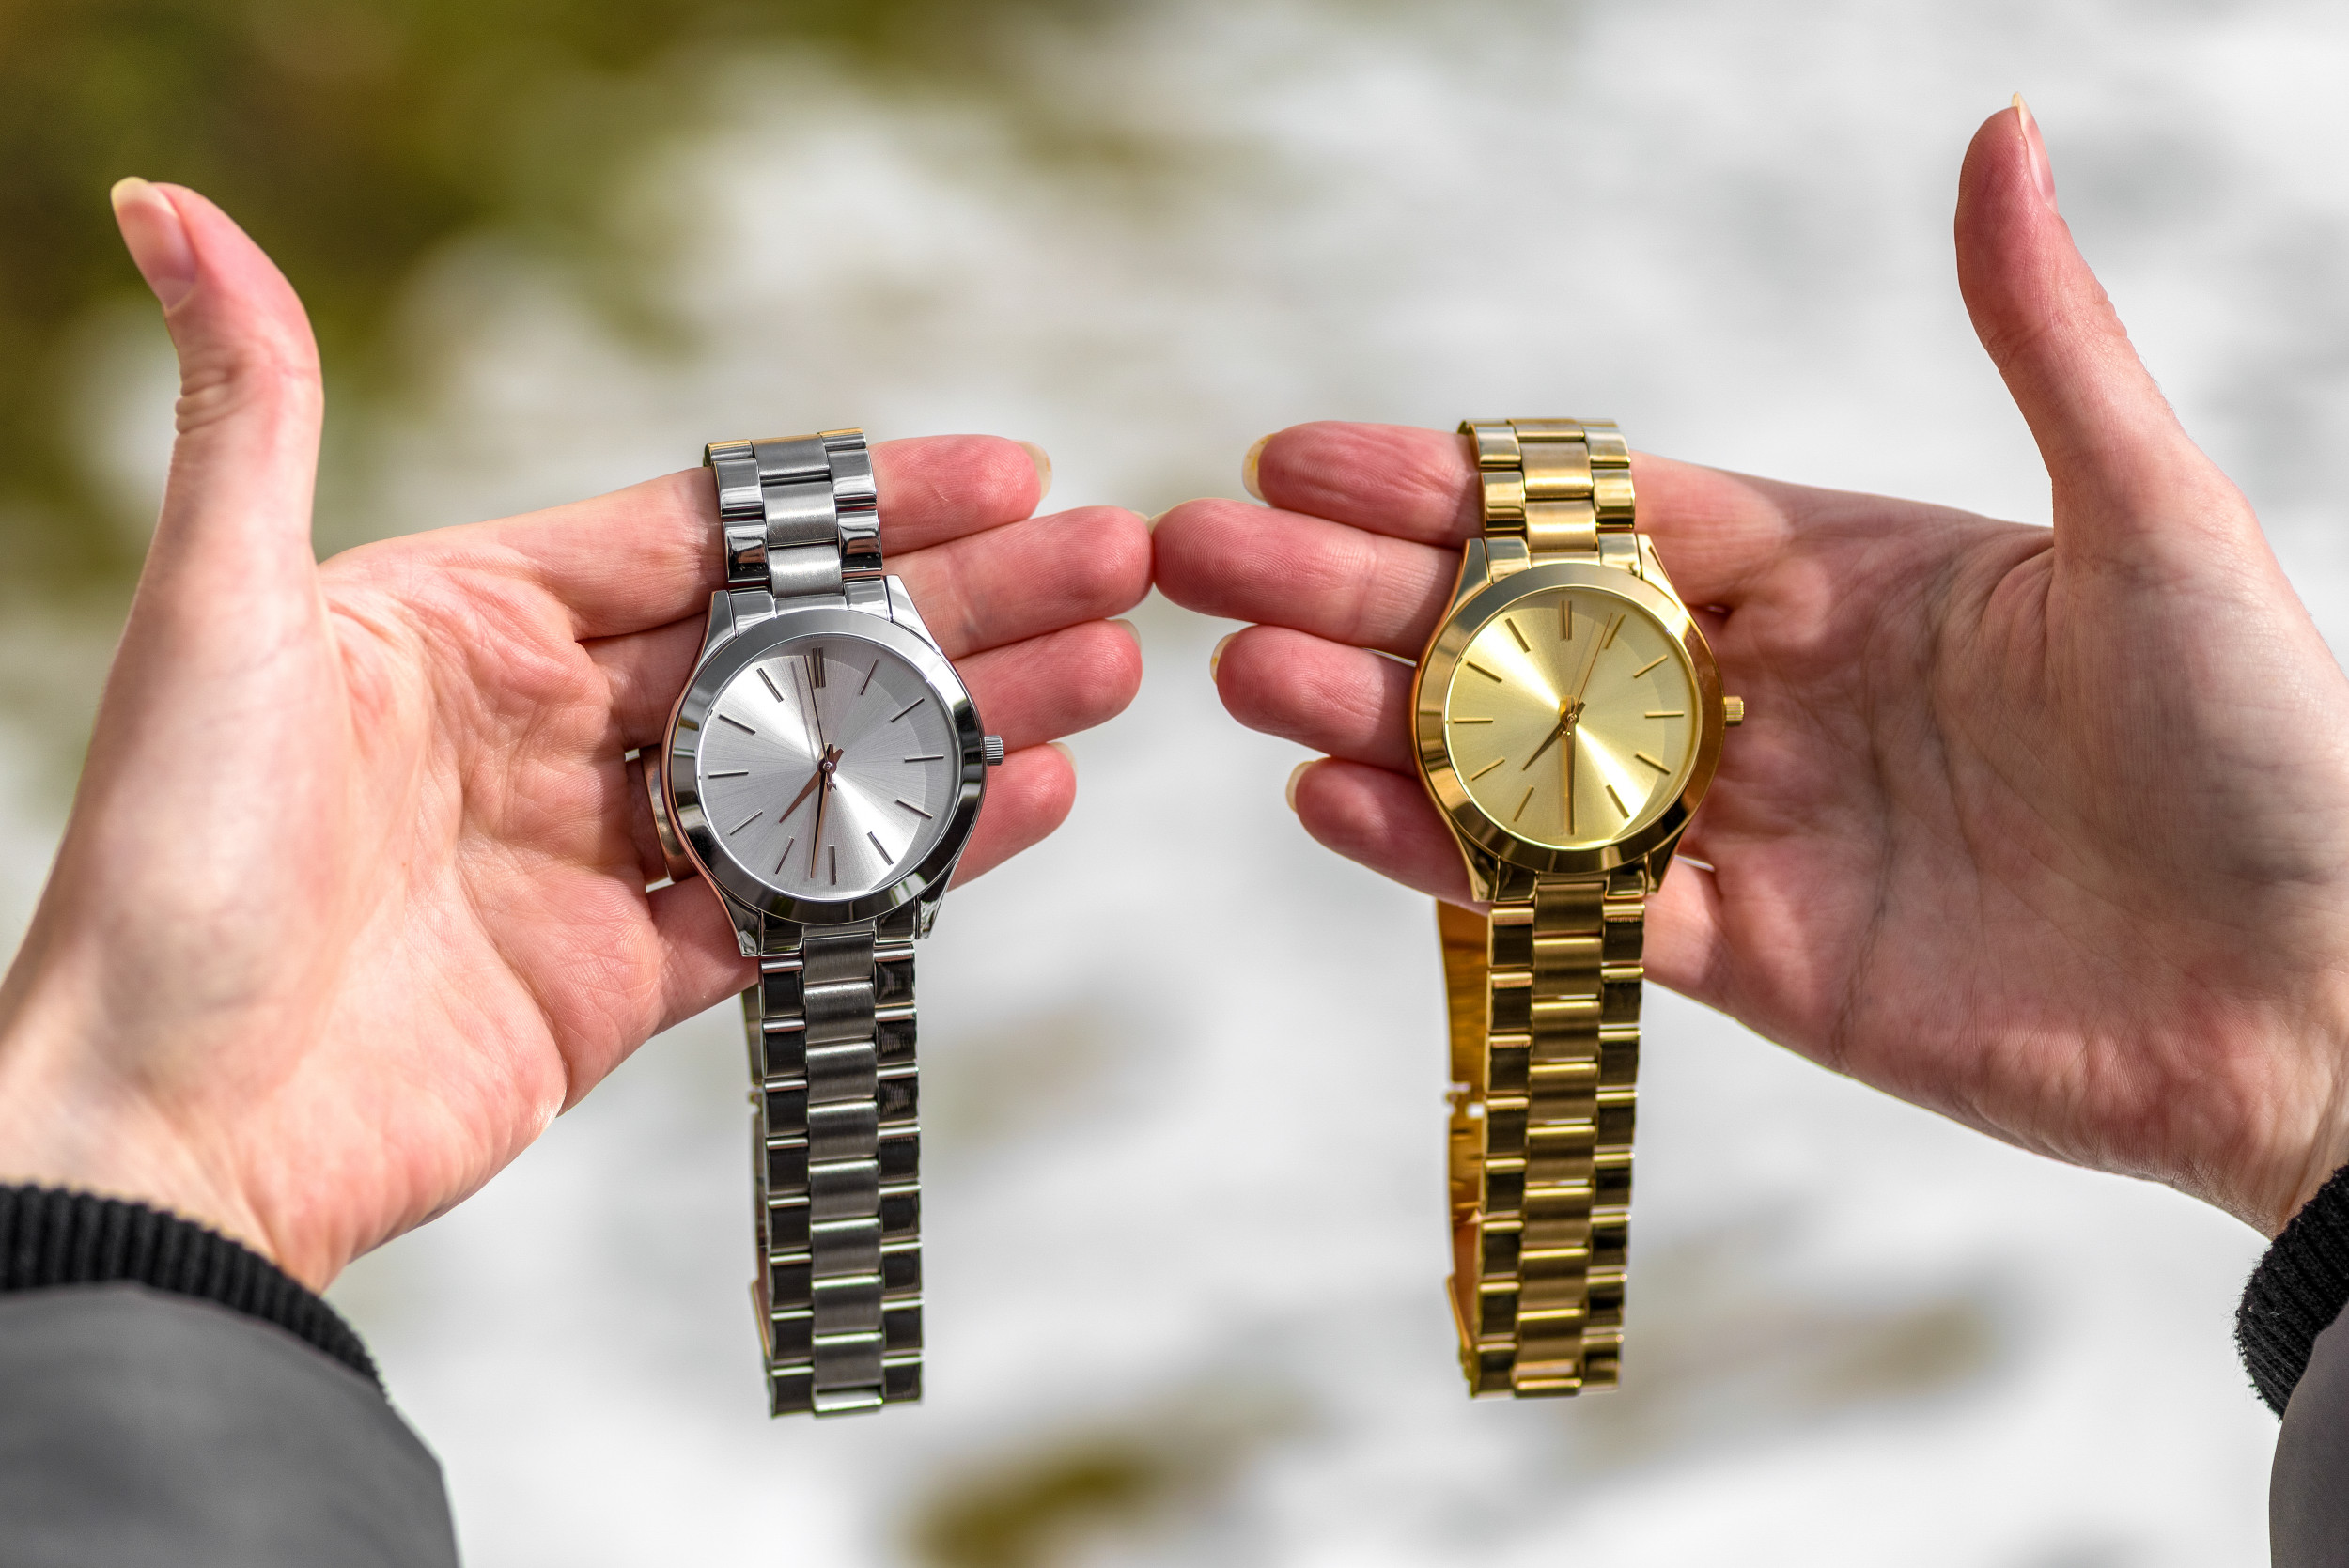 Company Will Pay Two People $1,300 to Wear Designer Watches for a Month